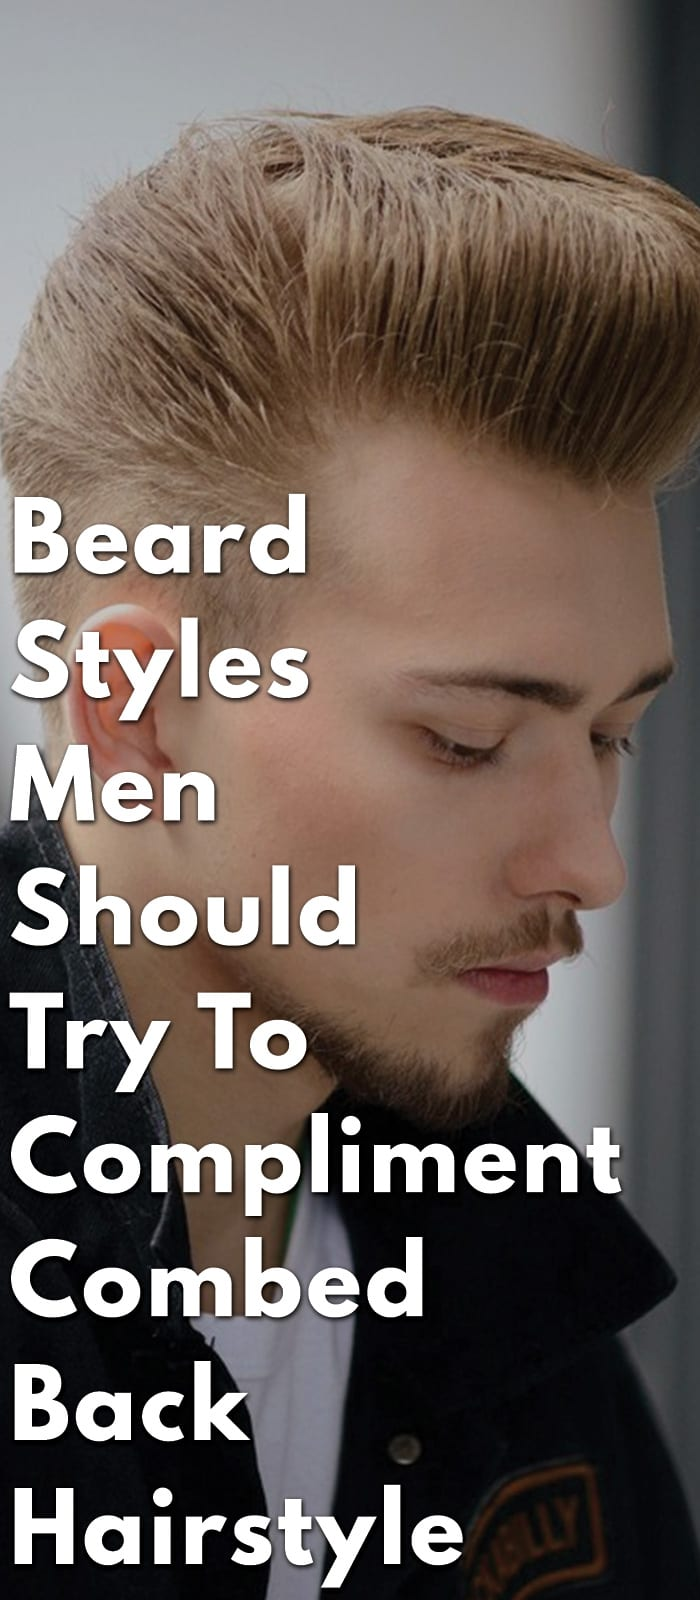 Beard-Styles-Men-Should-Try-To-Compliment-Combed-Back-Hairstyle.